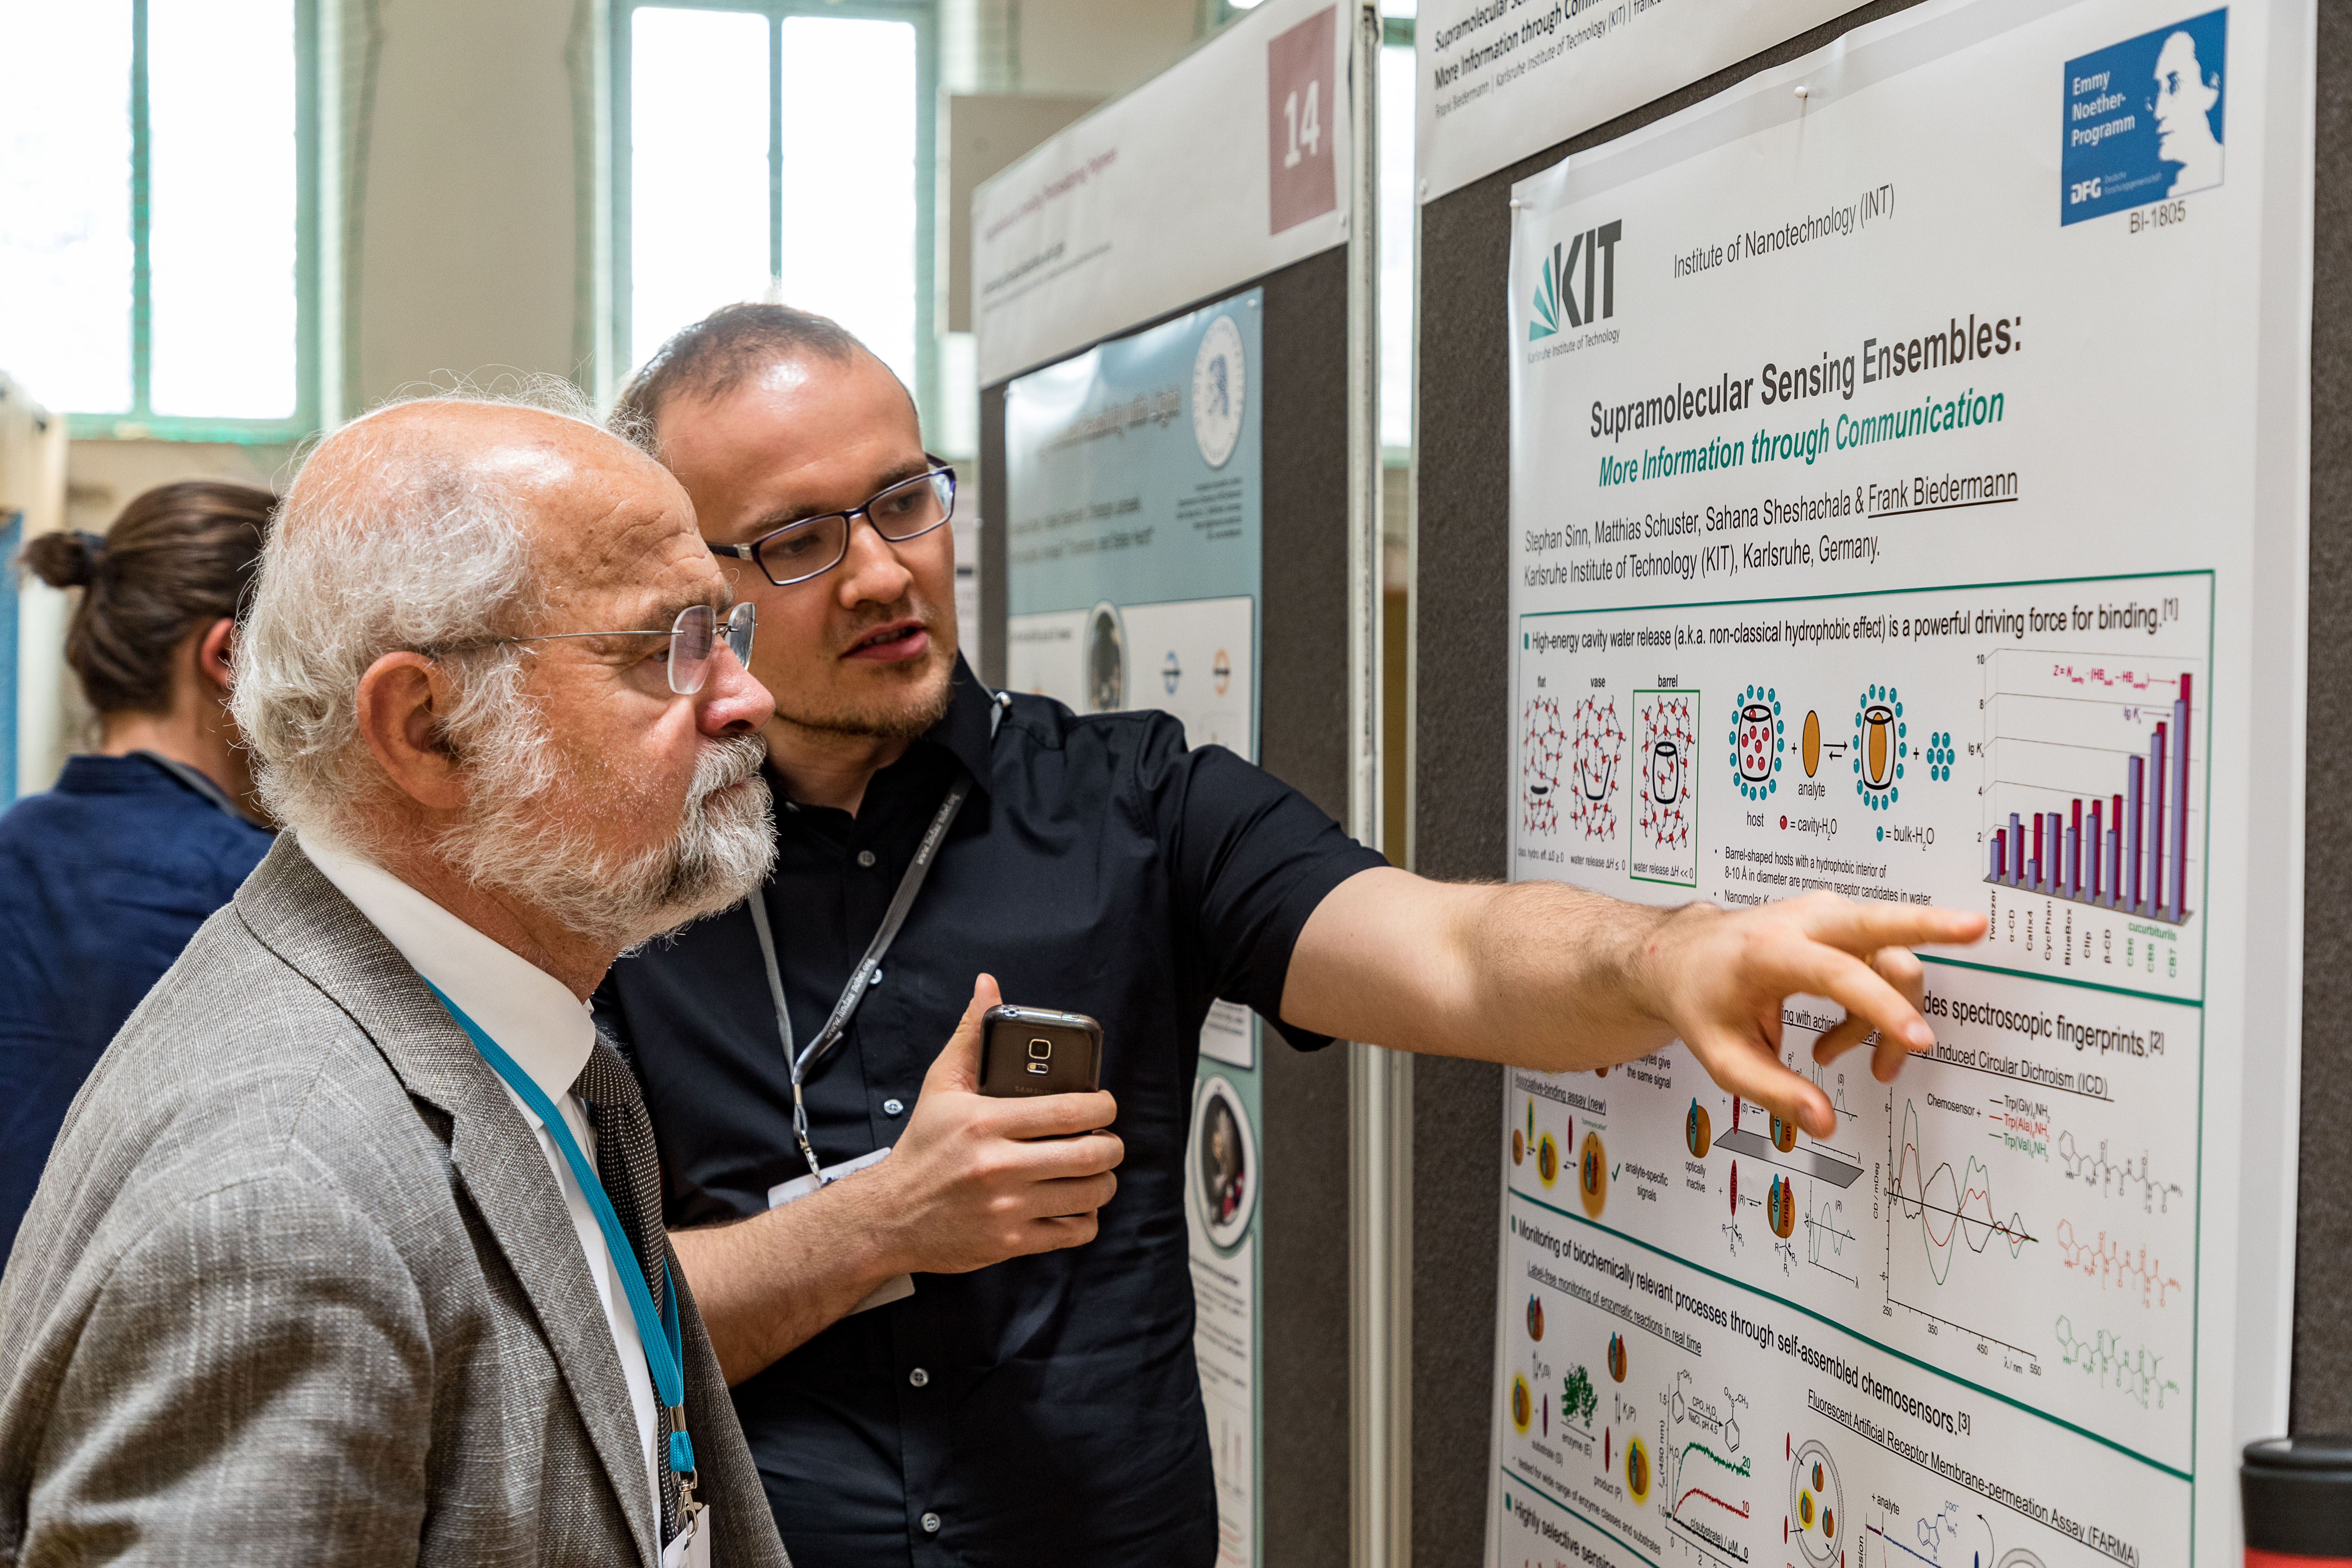 67th Lindau Nobel Laureate Meeting Chemistry, 25.06.2017 - 30.06.2017, Lindau, Germany, Picture/Credit: Christian Flemming/Lindau Nobel Laureate Meetings Poster Session